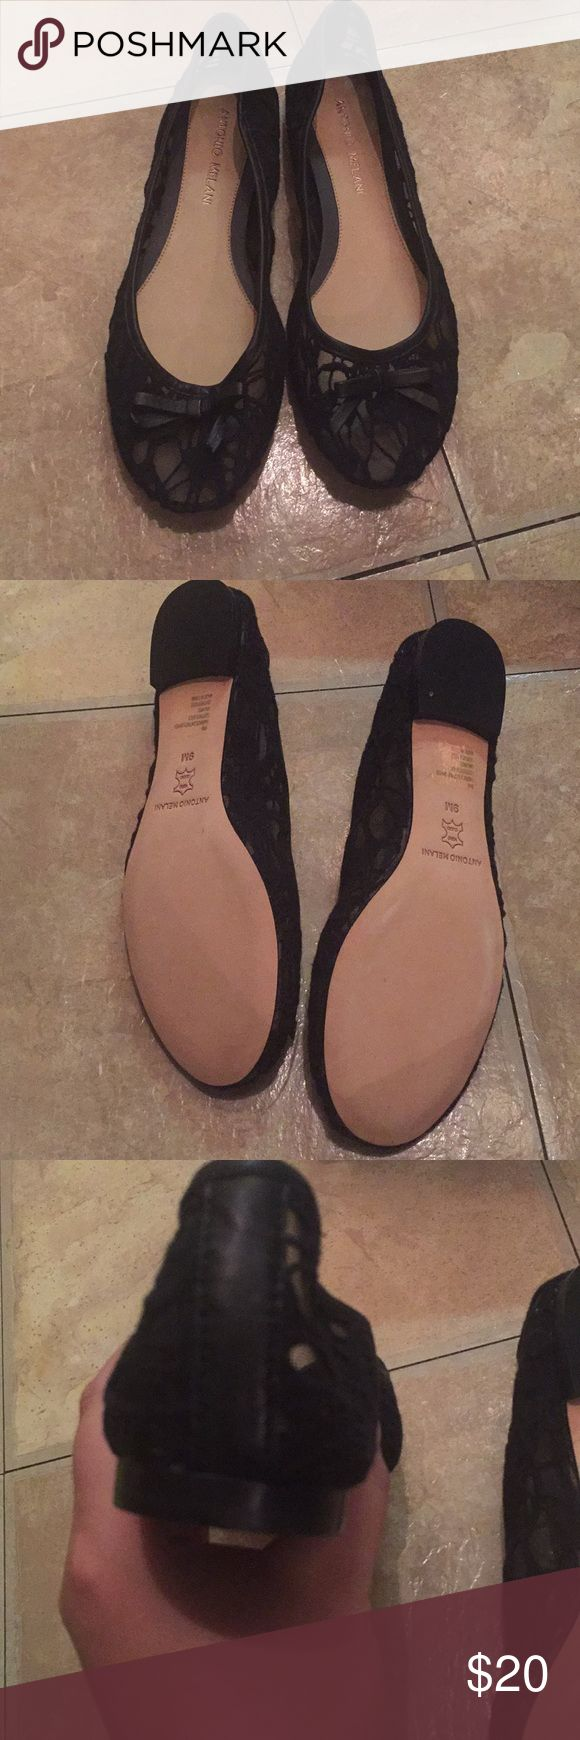 Antonio Melani Lacey flats worn once Antonio Melani Black Lacey flats worn once, in excellent condition with box ANTONIO MELANI Shoes Flats & Loafers